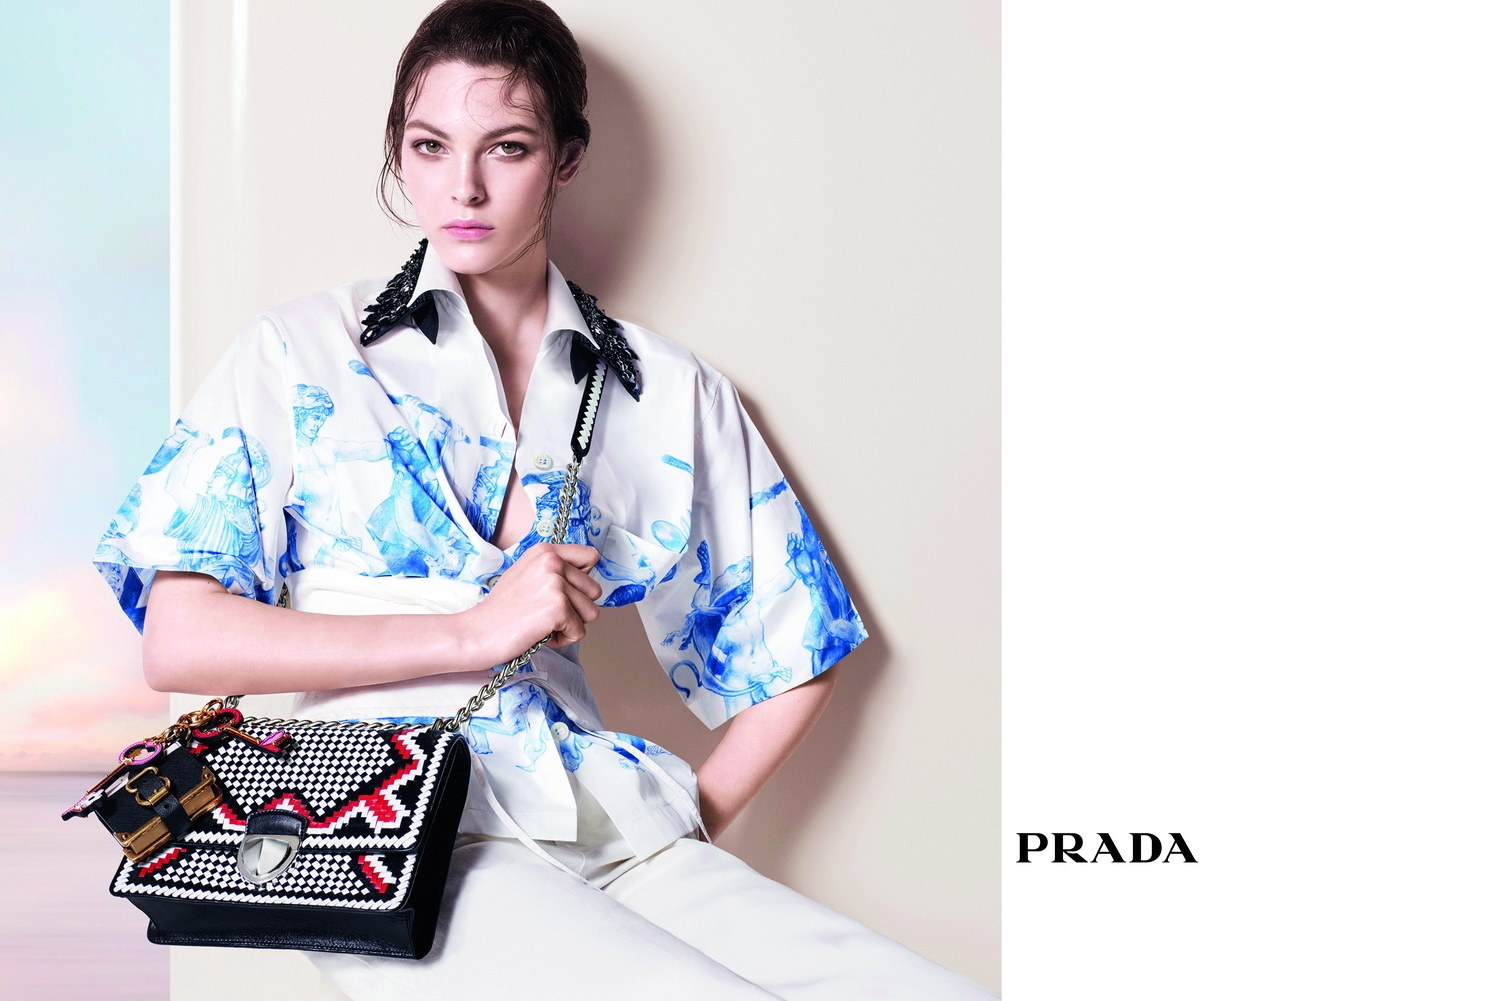 prada-charmed-advertising-campaign_vittoria-ceretti1